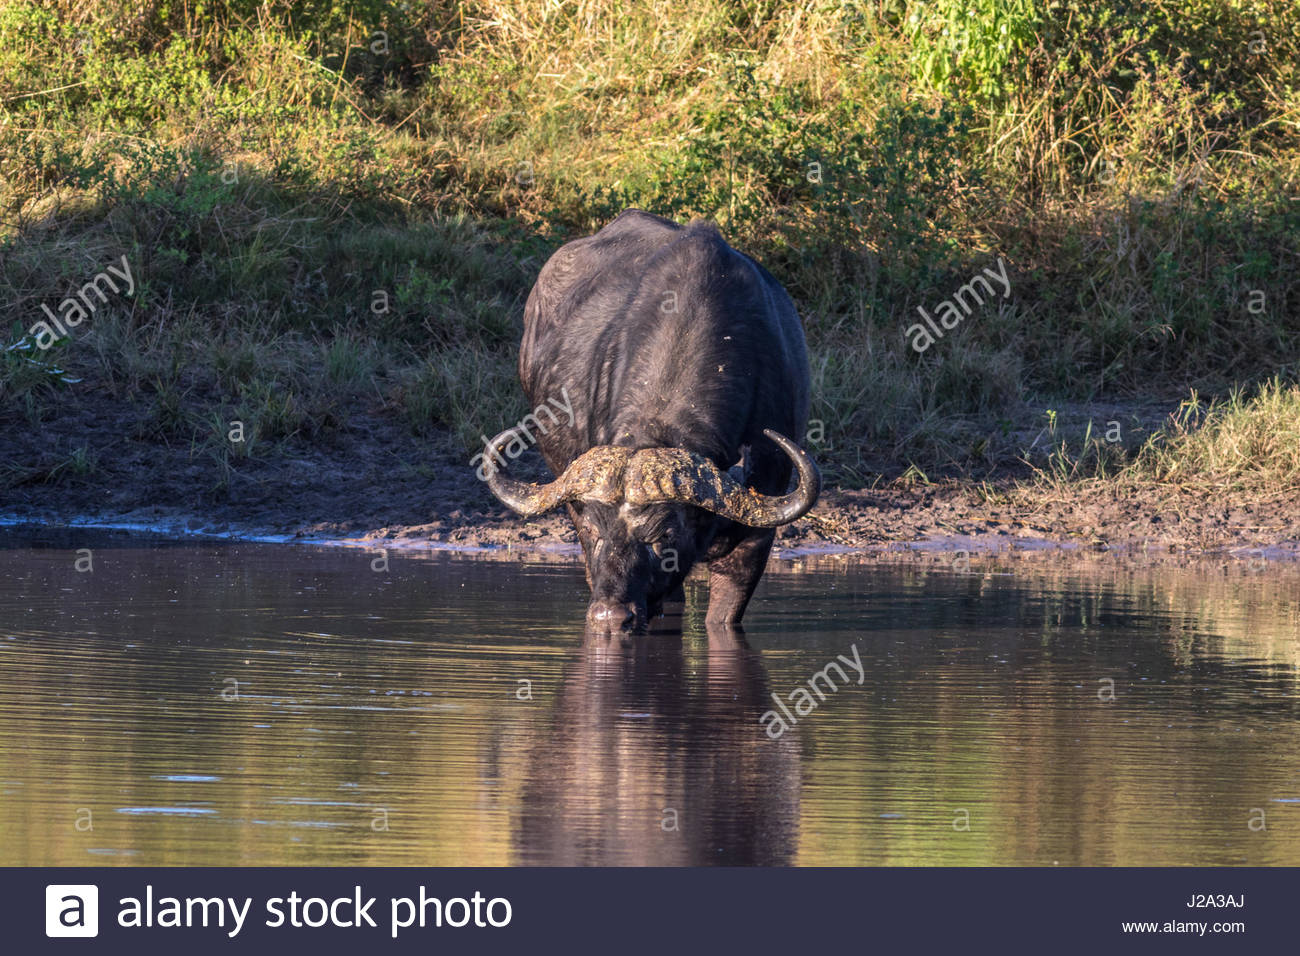 A male Buffalo reflected in still waters at the edge of the Chobe River in the Chobe National Park. - Stock Image